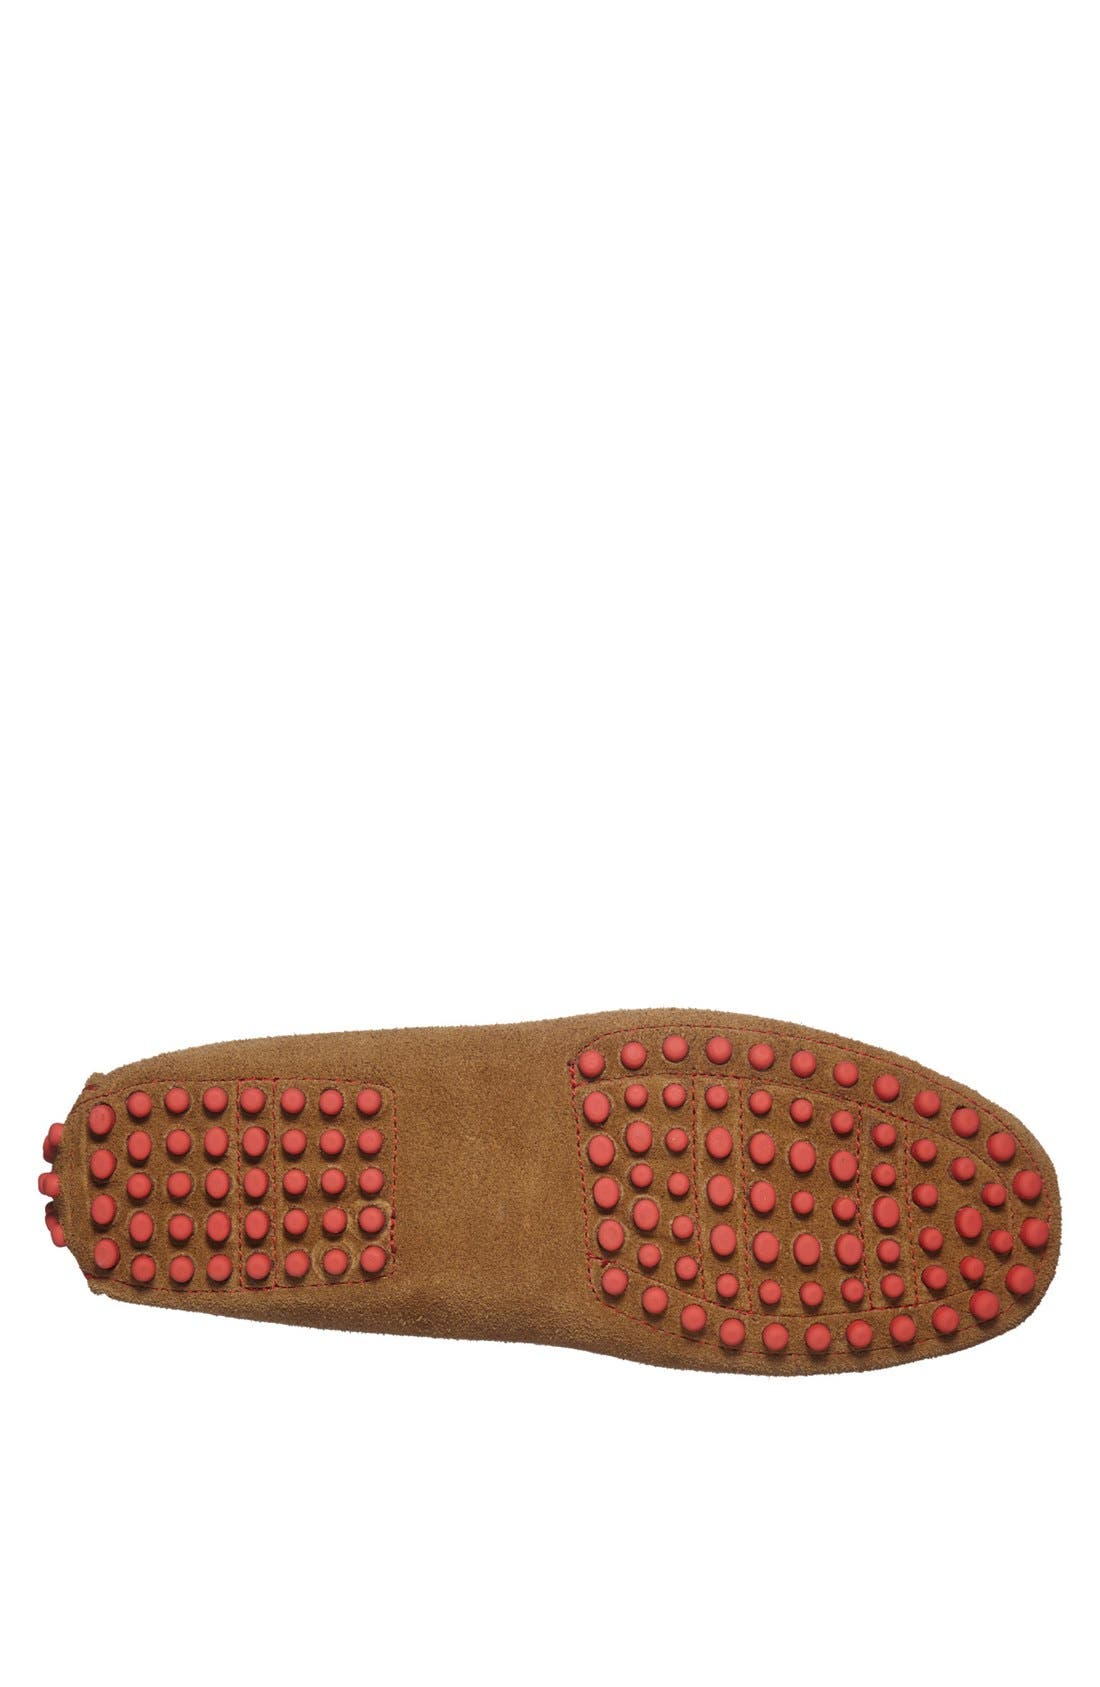 'Capri' Suede Driving Shoe,                             Alternate thumbnail 4, color,                             Tobacco